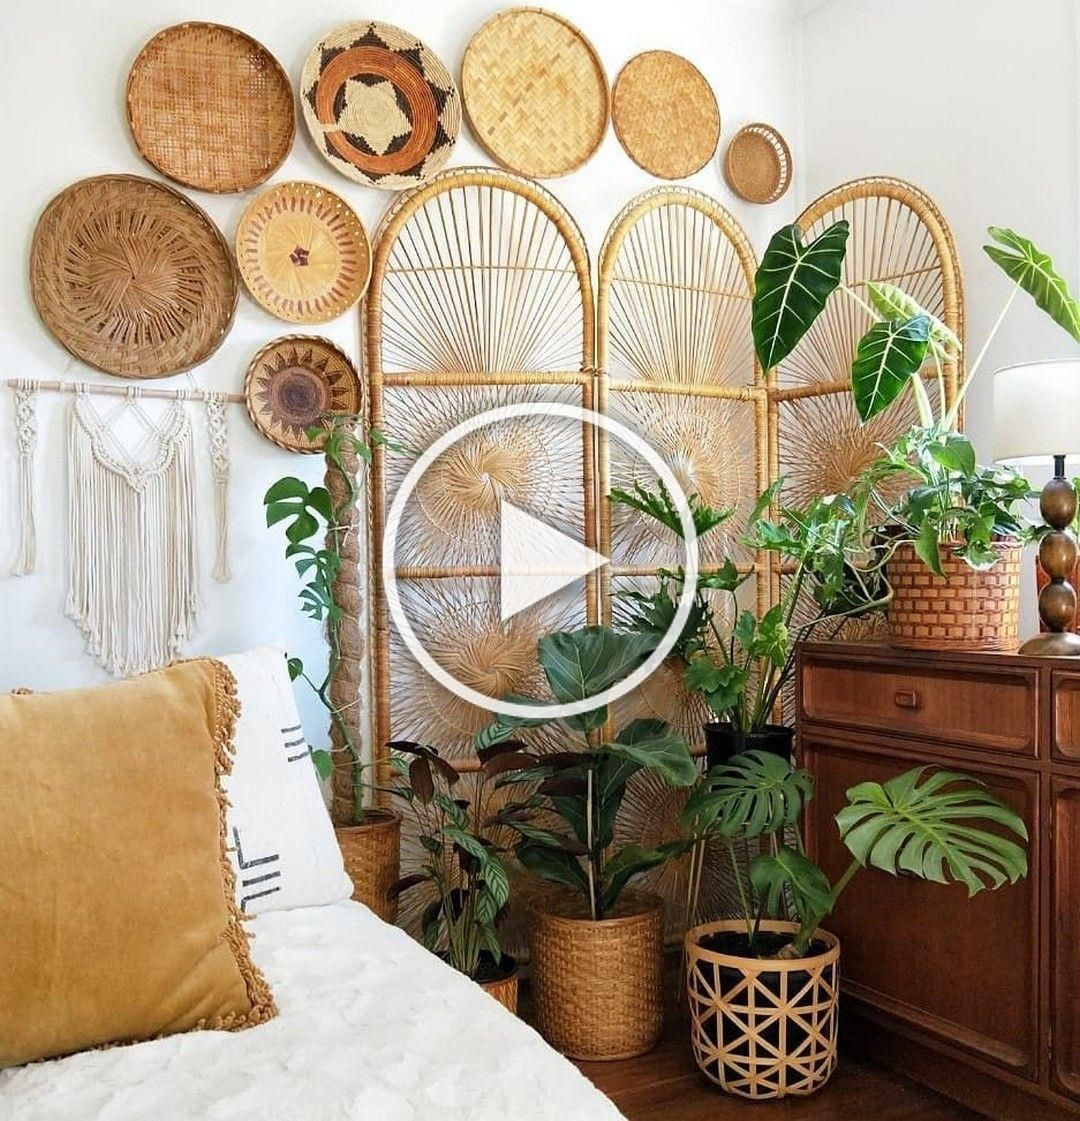 30  CLEVER WAYS TO DECORATE YOUR HOME LOOK LIKE A HIPPIE BOHO IDEAS #home #homedecor #homedecorideas